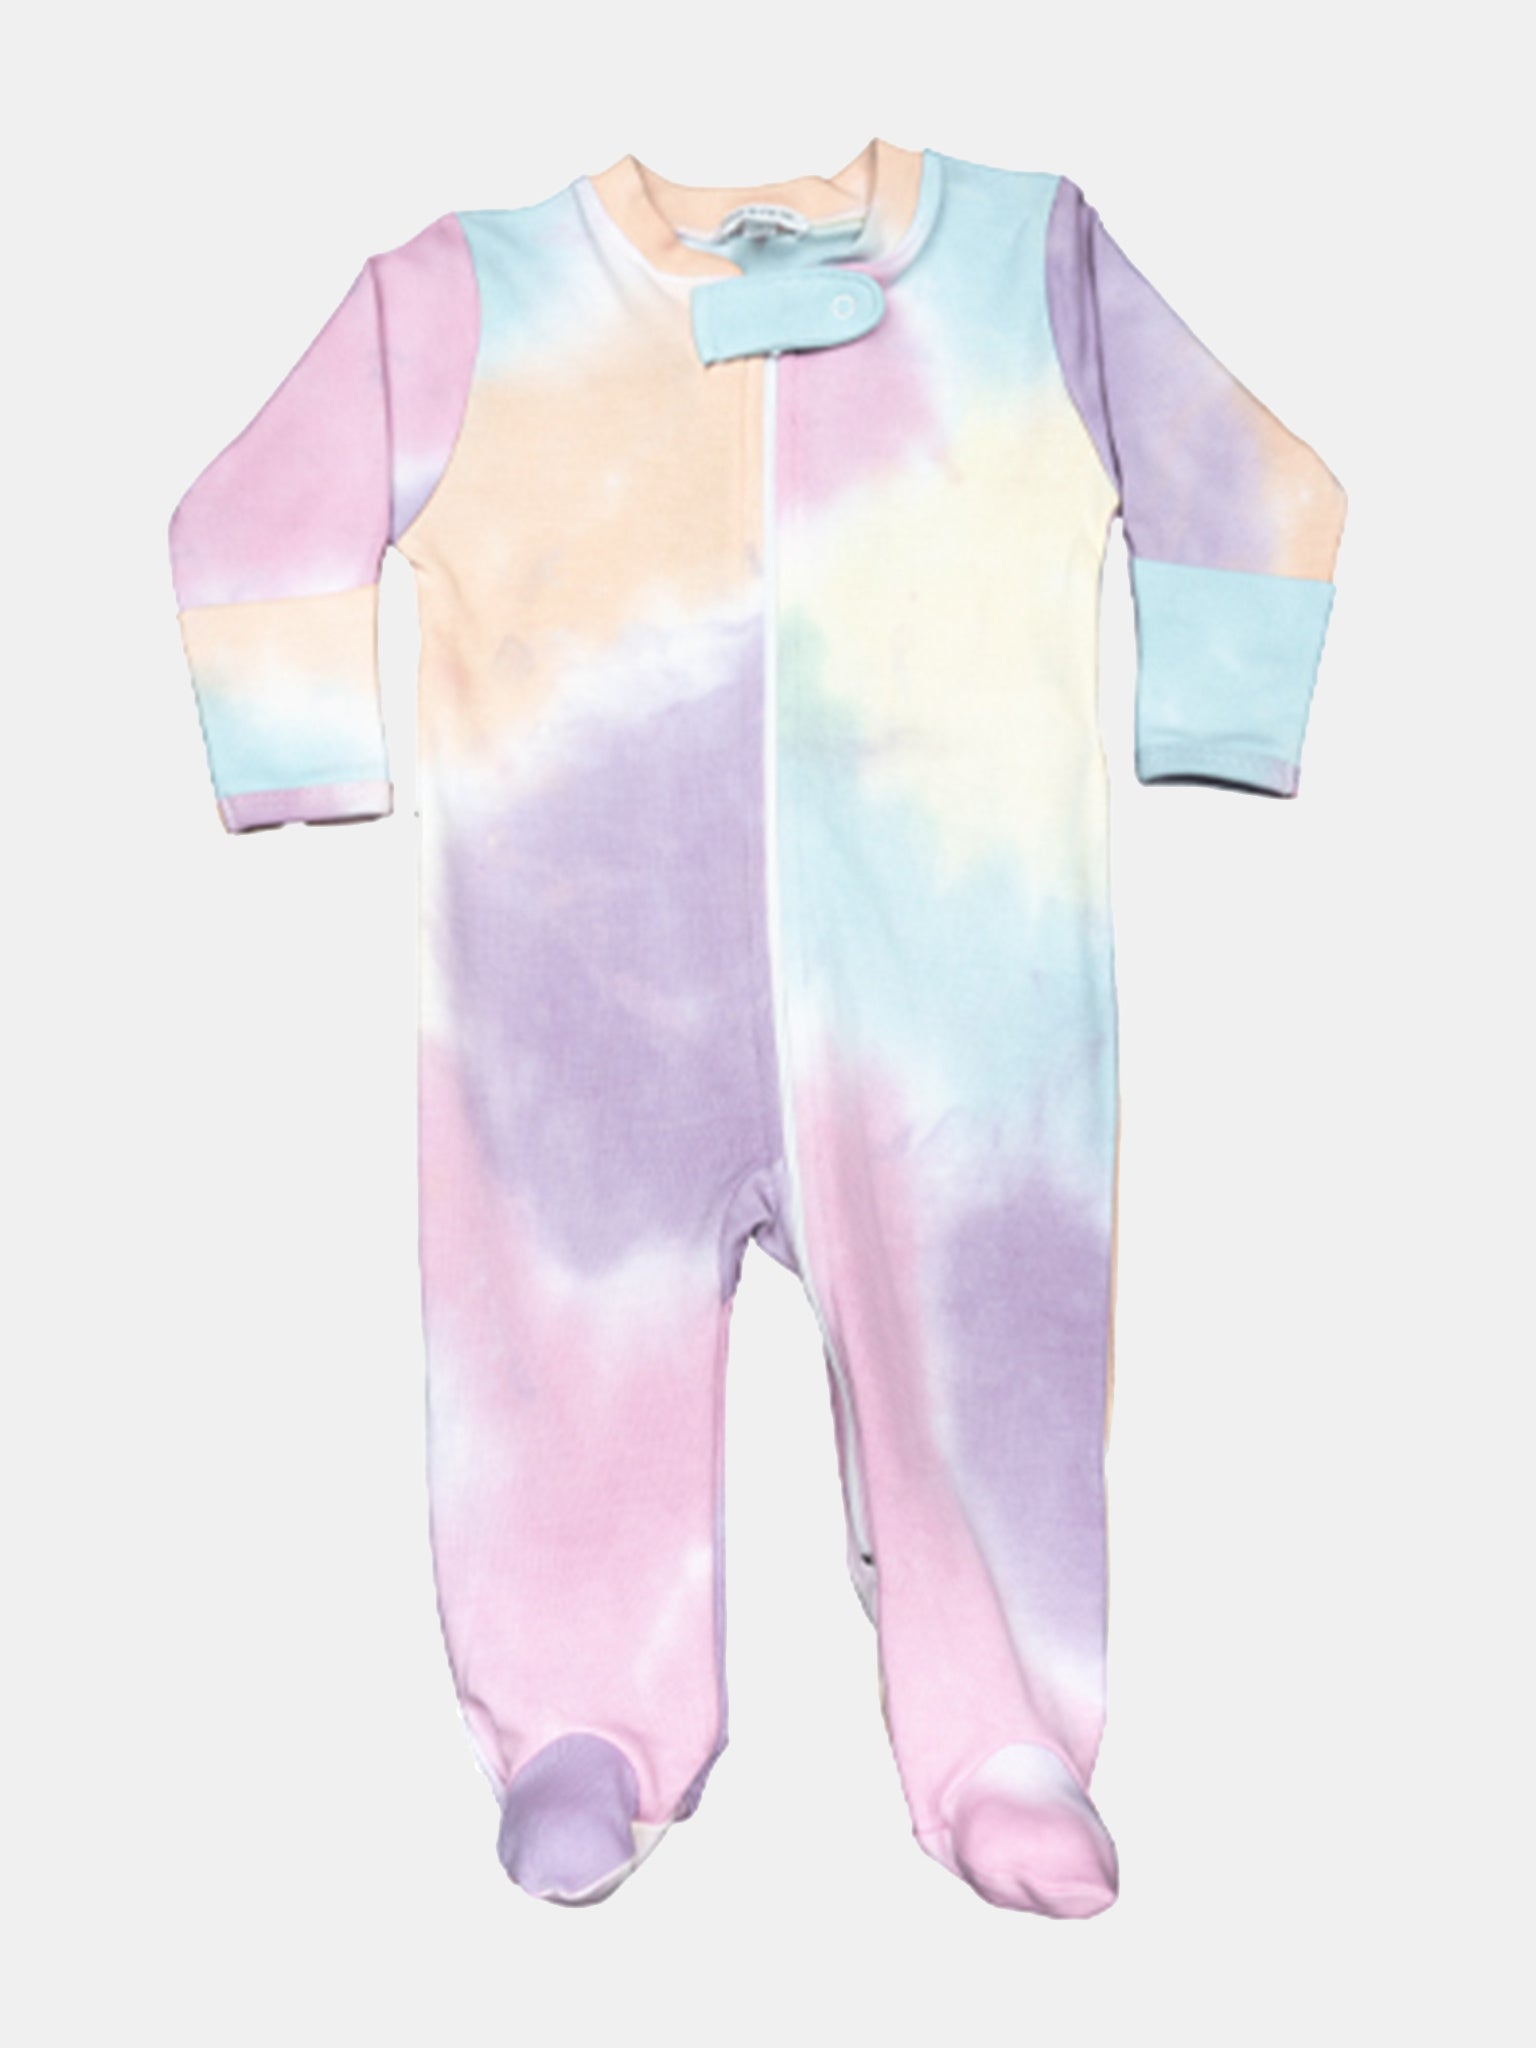 Baby Noomie Little Girls' Rainbow Tie Dye Zipper Footie